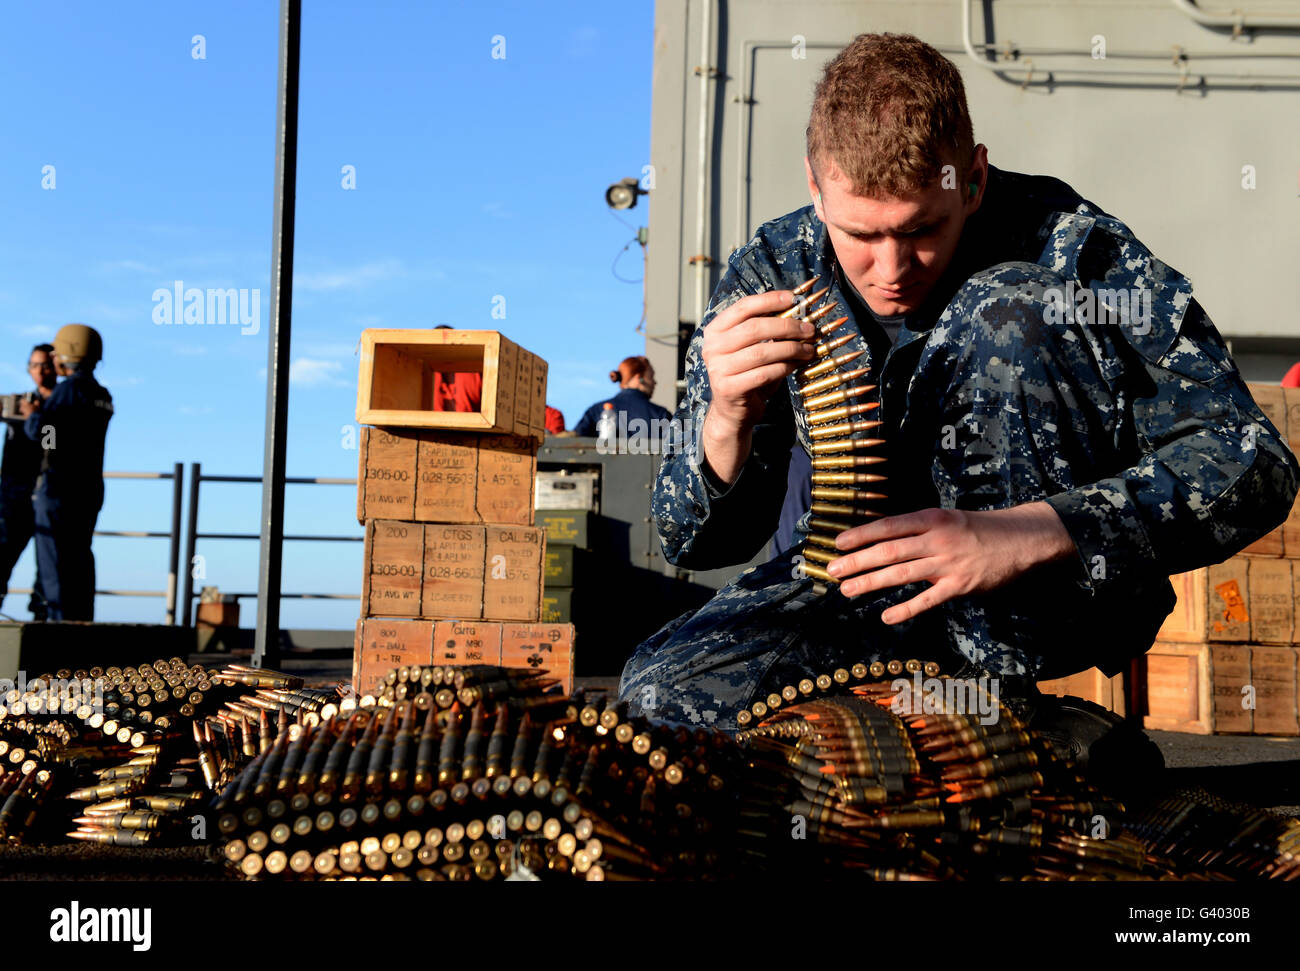 Gunner's Mate sorts ammunition during a live fire training exercise. Stock Photo